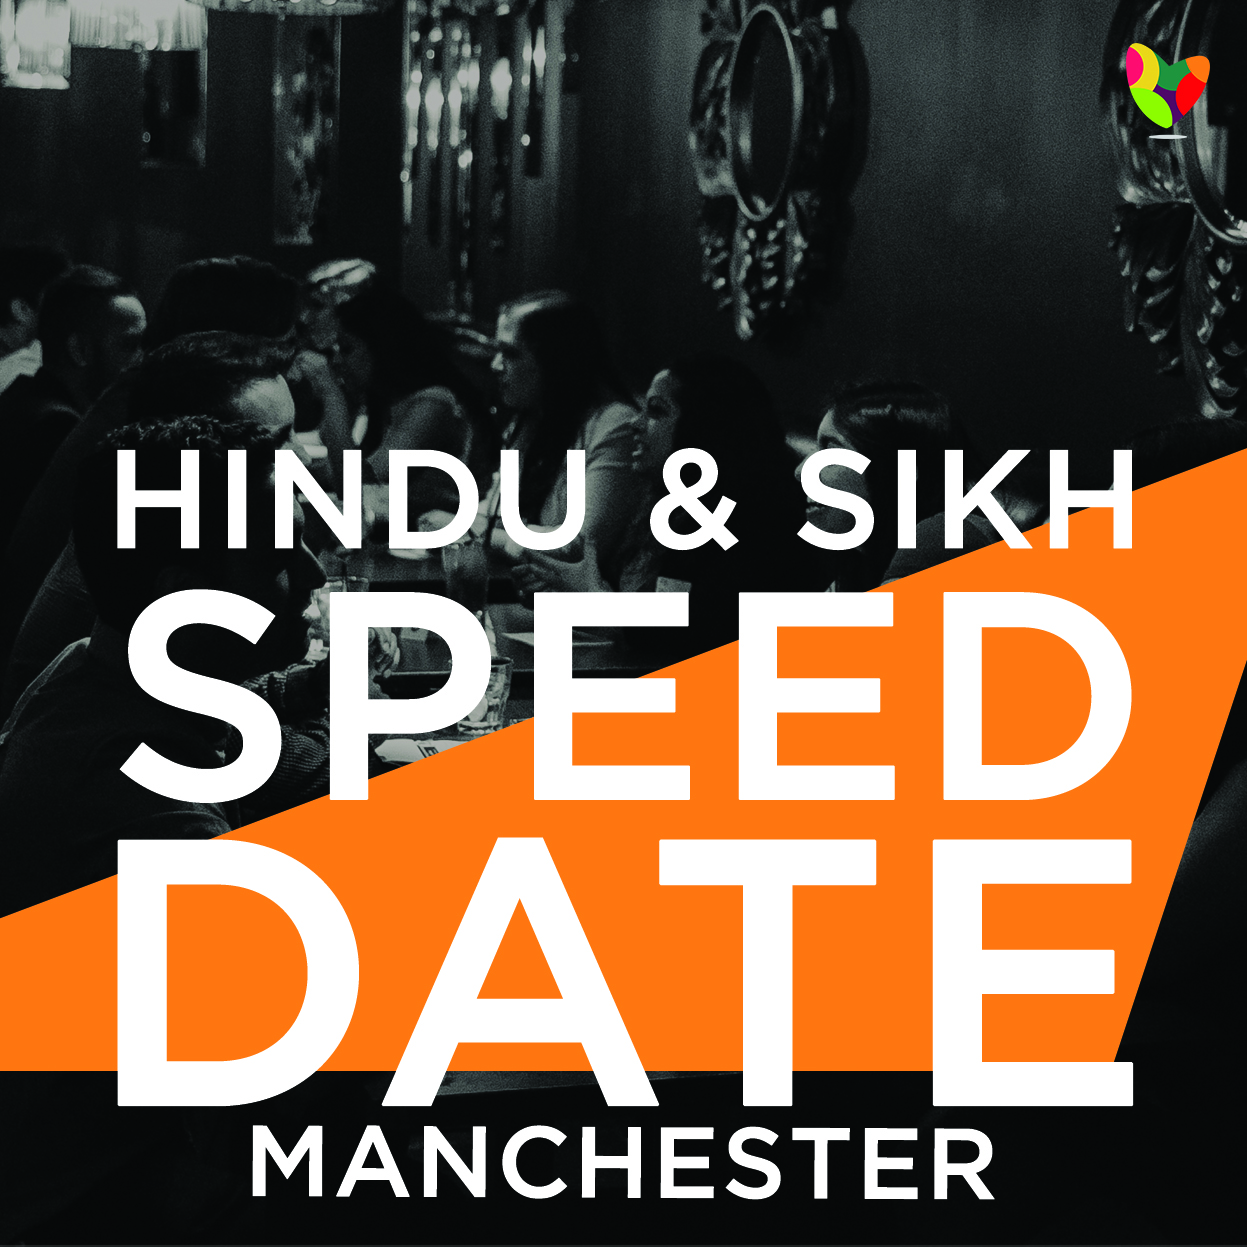 hindu speed dating with shaadicom Title: matrimonial - indian matrimonials - marriage - shaadicom description: matrimonials - indian matrimonial - marriage, the no1 matrimonial services provider add your free matrimonial profile now and contact partners for free.